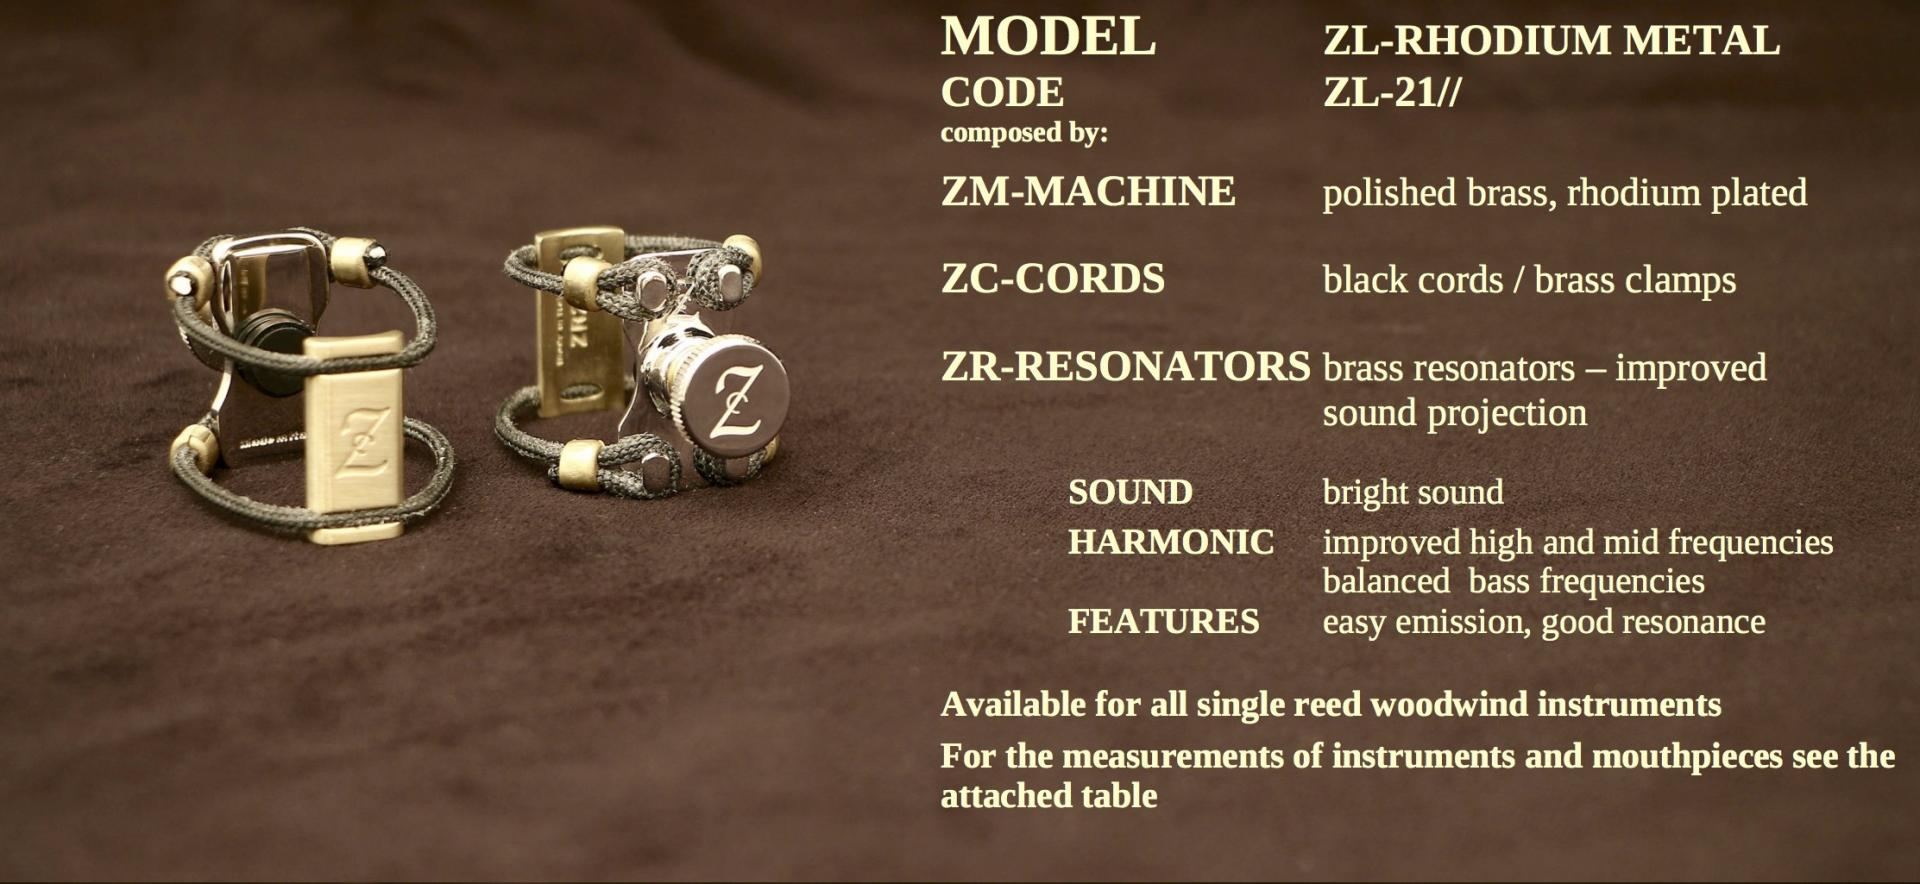 ZAC LIGATURE MODEL: ZL-RHODIUM METAL